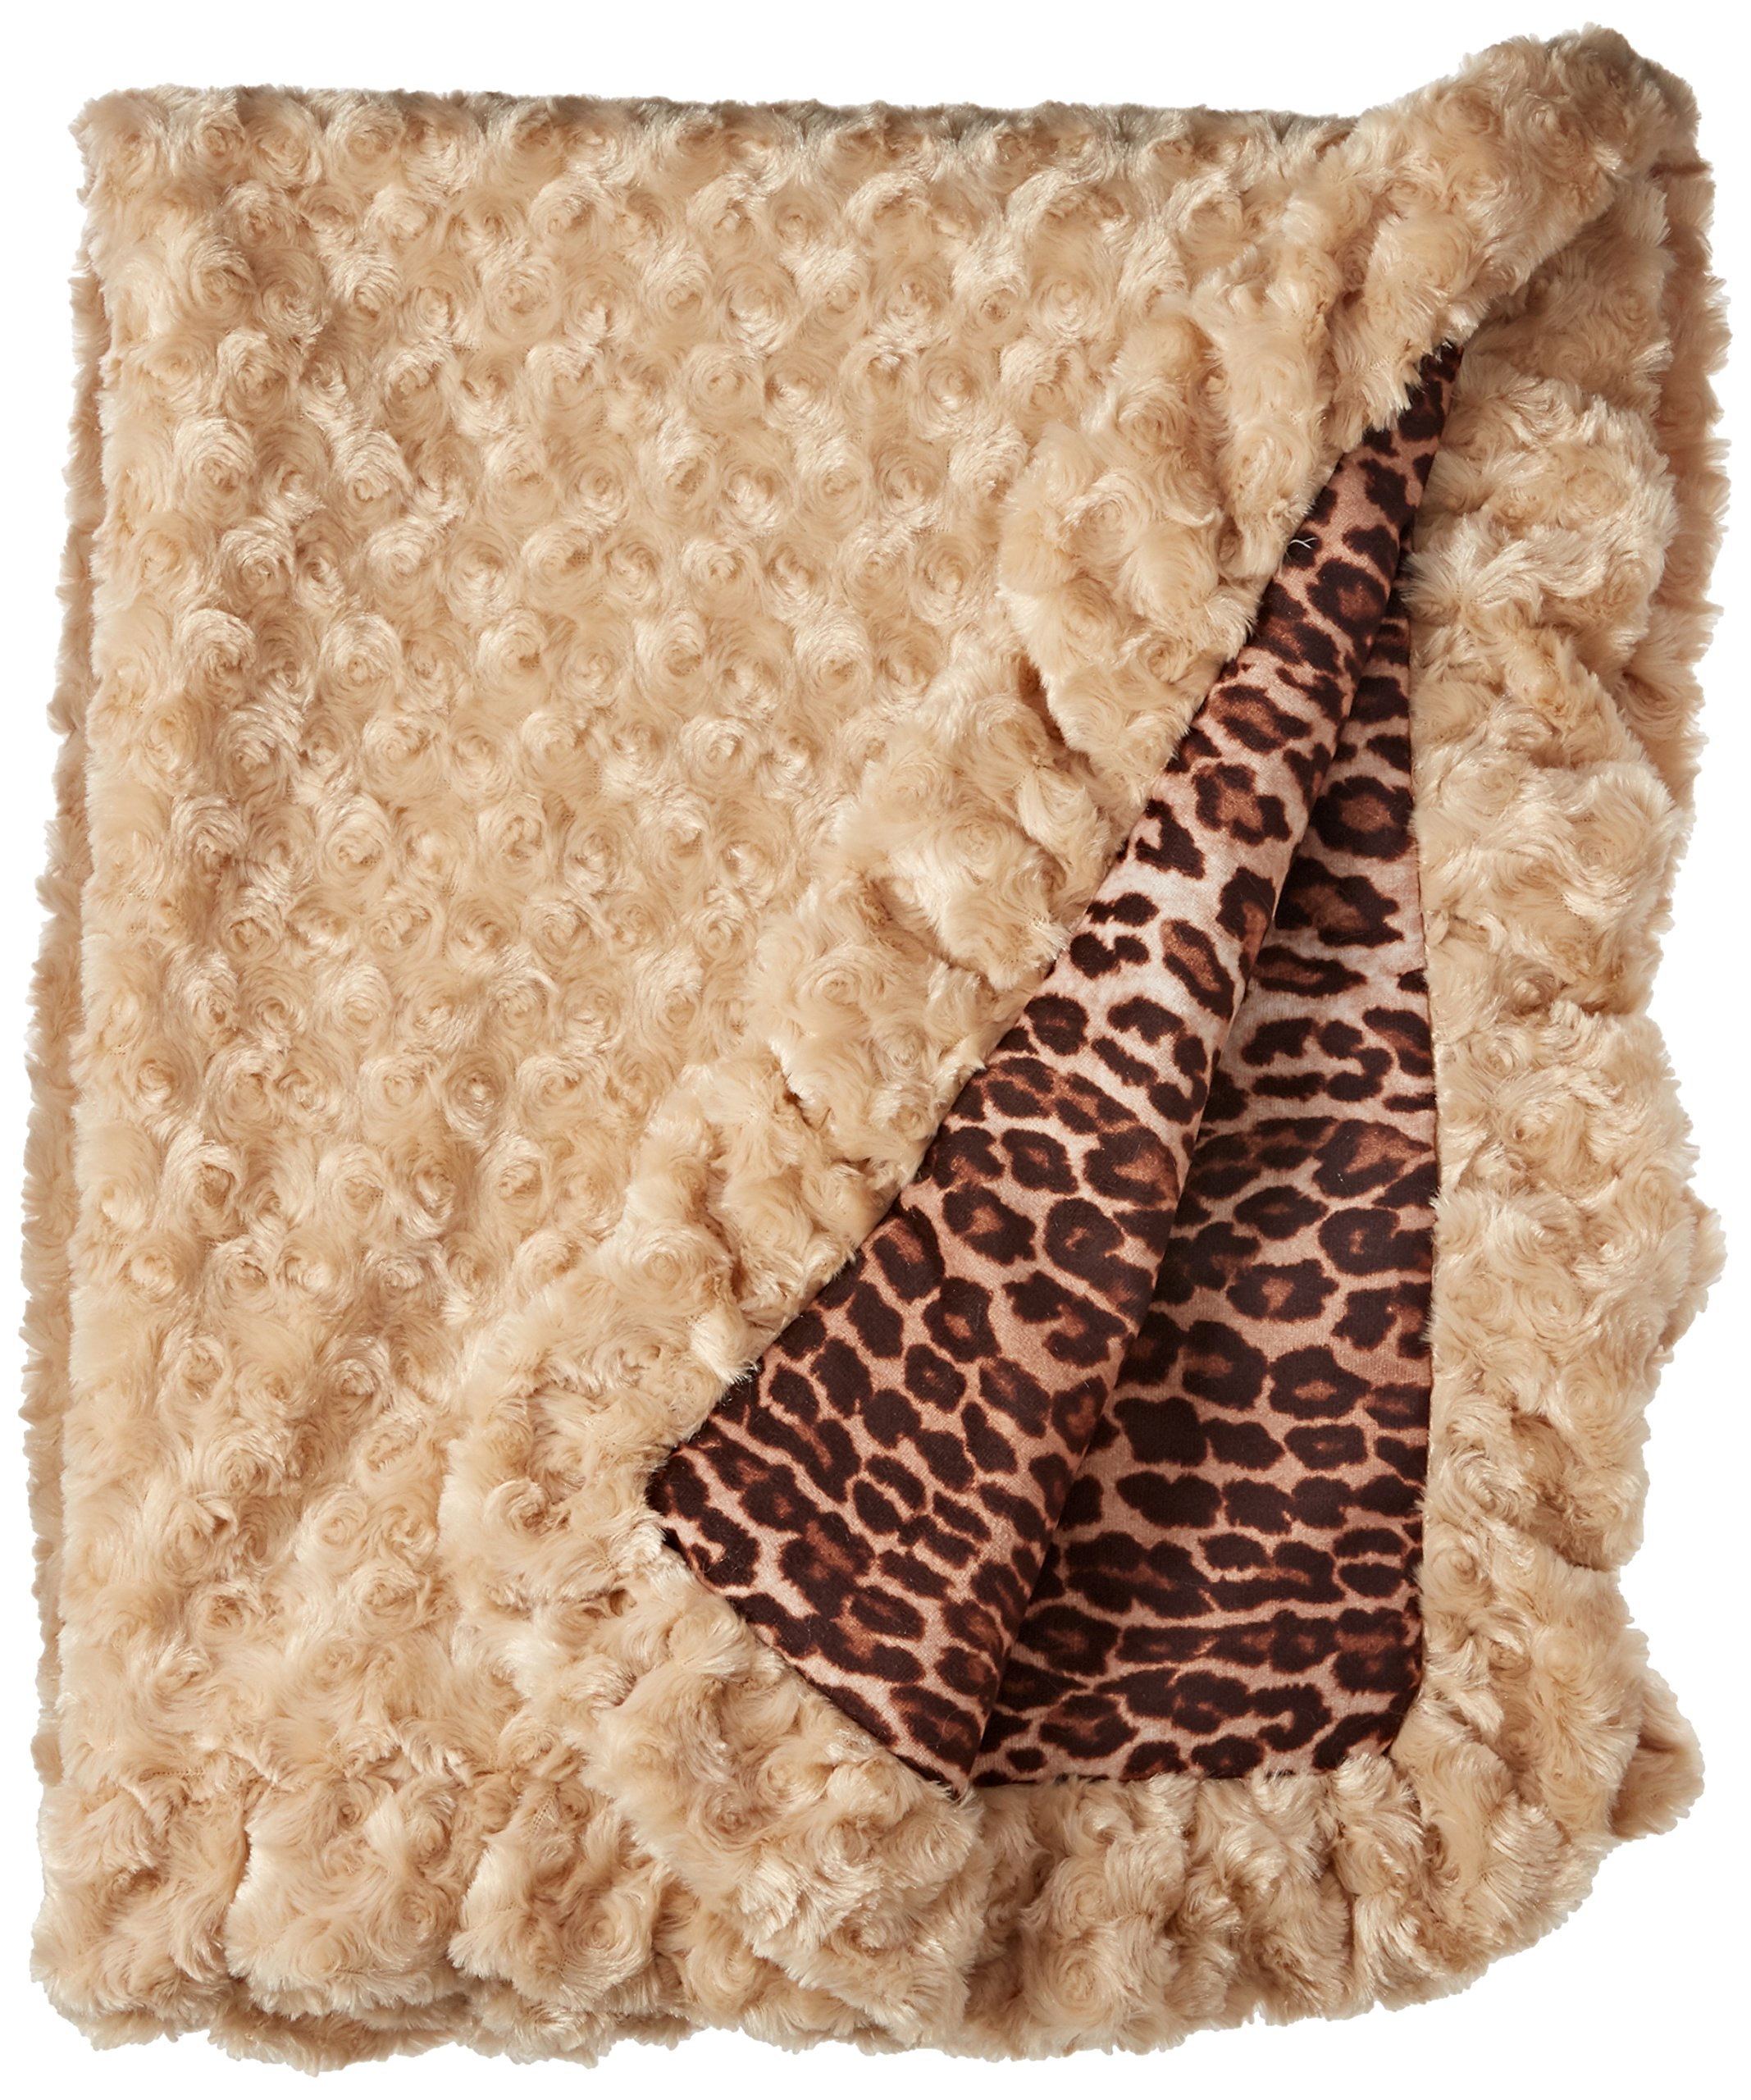 BESSIE AND BARNIE Camel Rose/Chepard Luxury Ultra Plush Faux Fur Pet, Dog, Cat, Puppy Super Soft Reversible Blanket (Multiple Sizes)